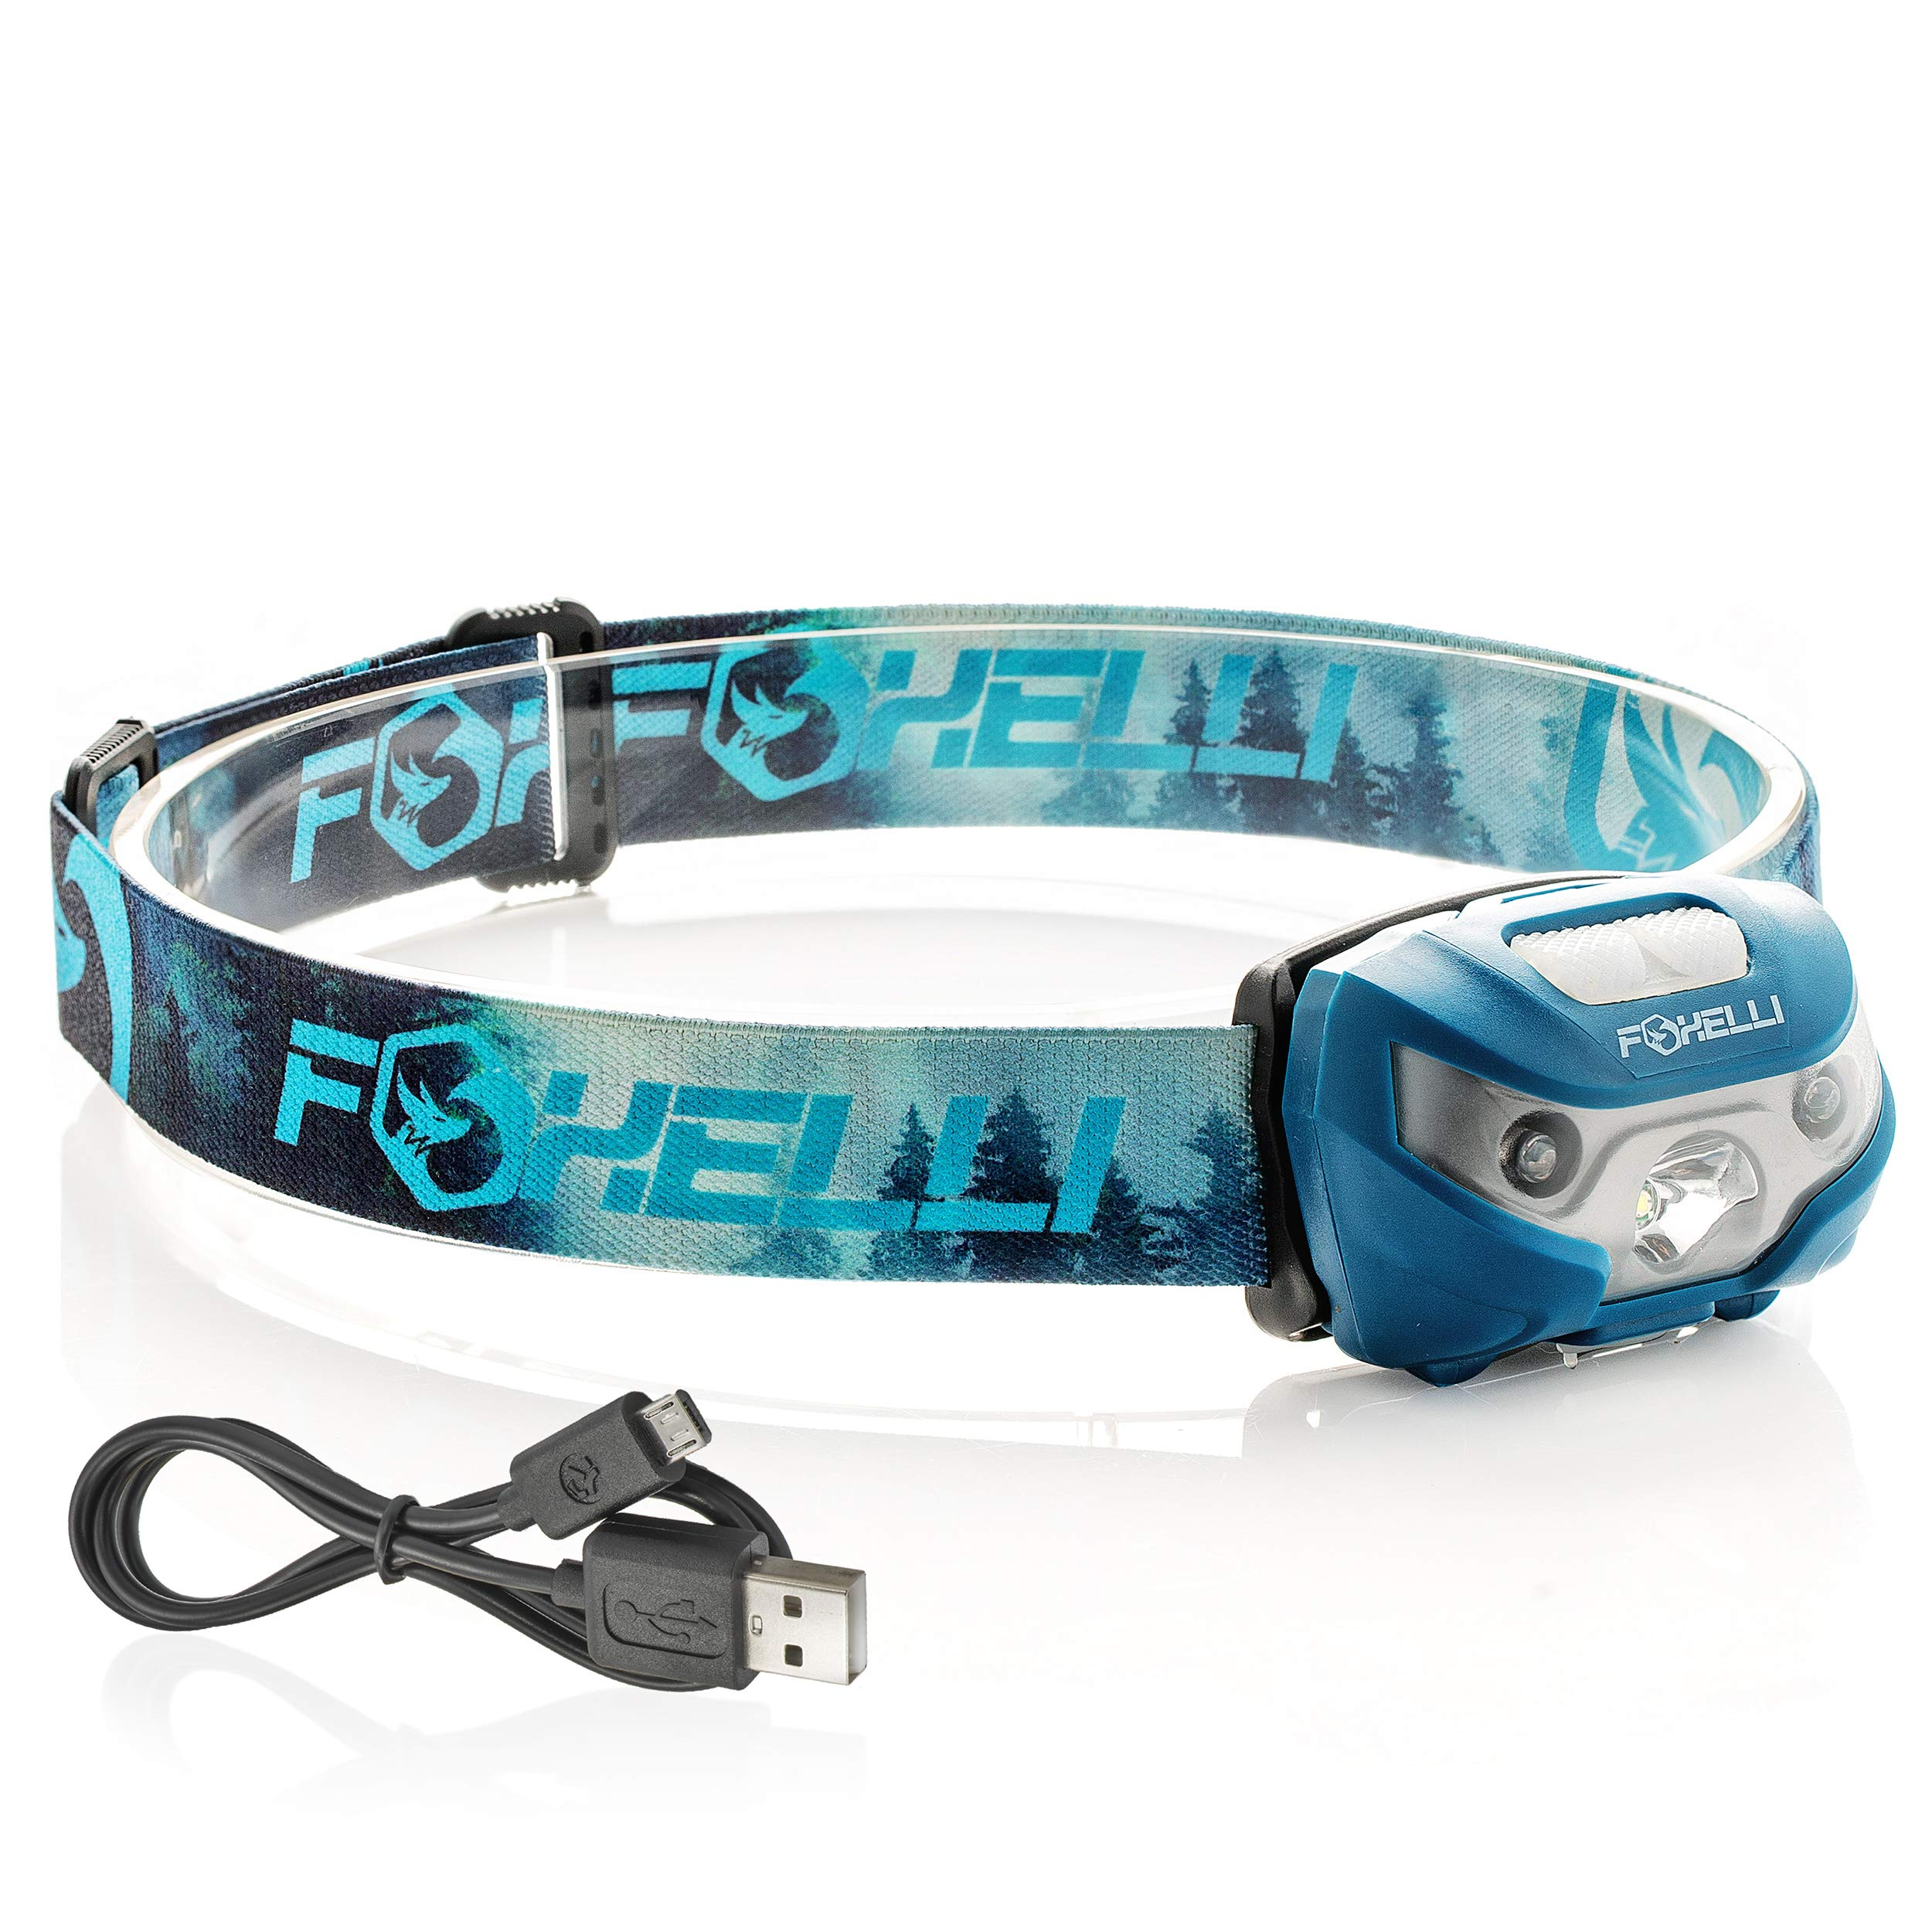 Foxelli USB Rechargeable Headlamp Flashlight - 160 Lumen, up to 30 Hours of Constant Light on a Single Charge, Super Bright White Led + Red Light, Compact, Easy to Use, Headlight for Camping & Running by Foxelli